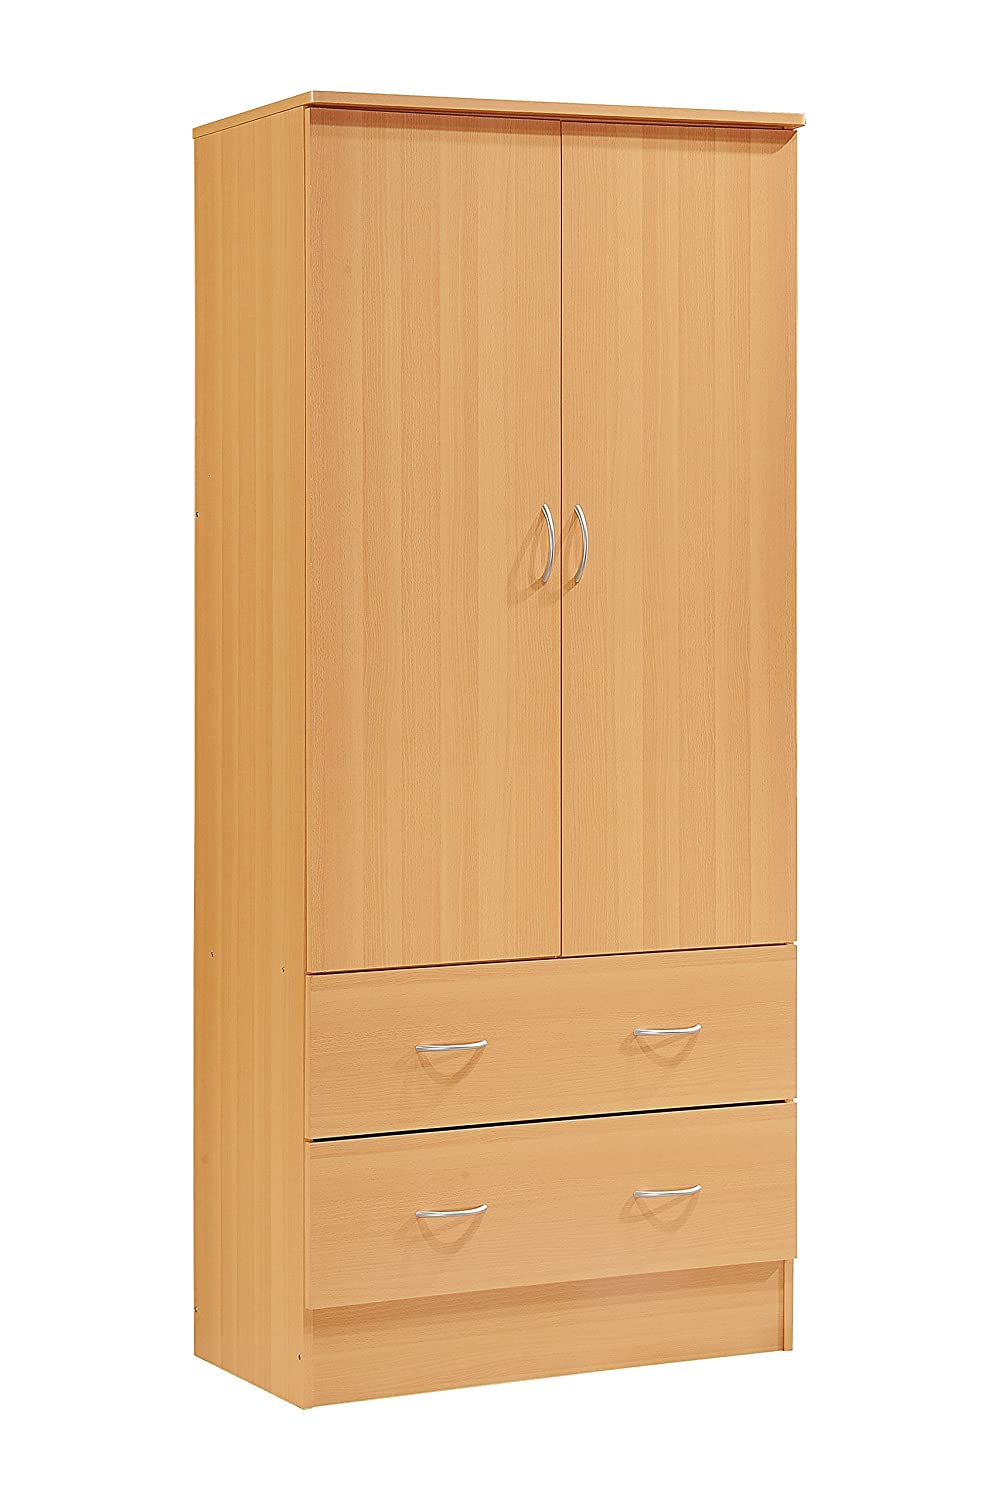 drawer drawers rfppgr with double knock painted wardrobe gents paint s padstow roseland furniture products resistant